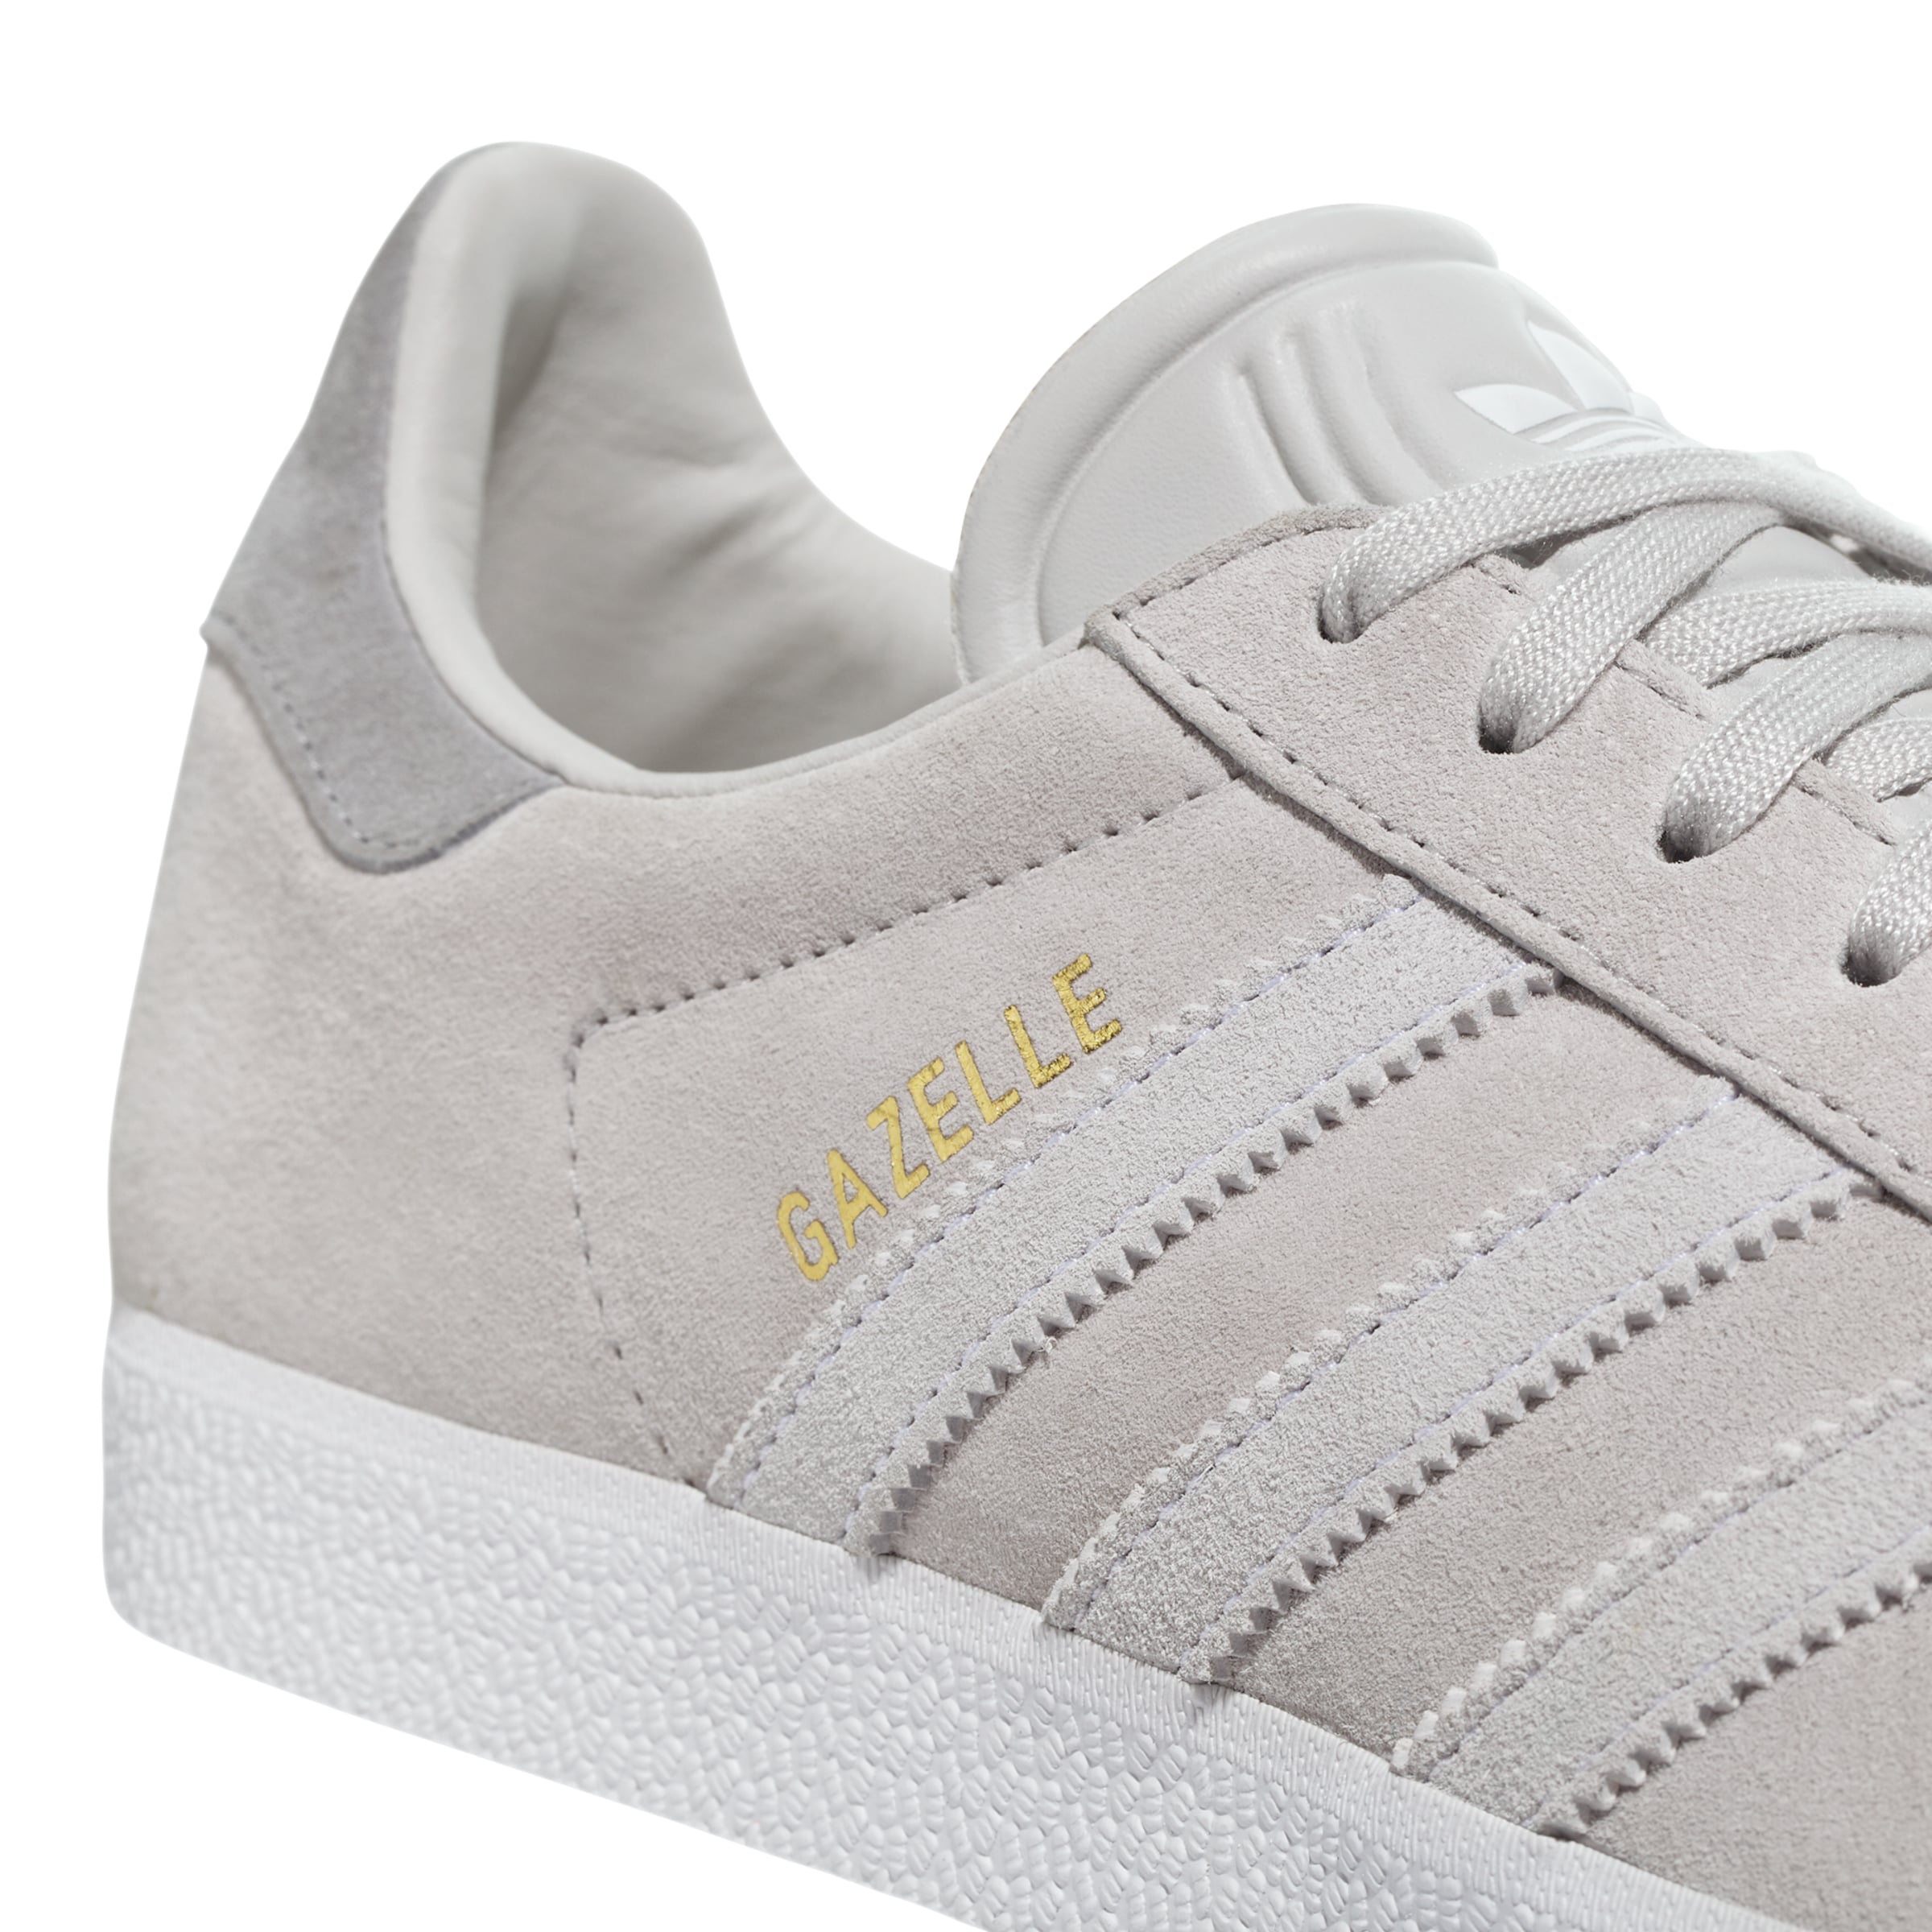 'gazelle W' Adidas In Originals Grau Sneaker 53j4ALR